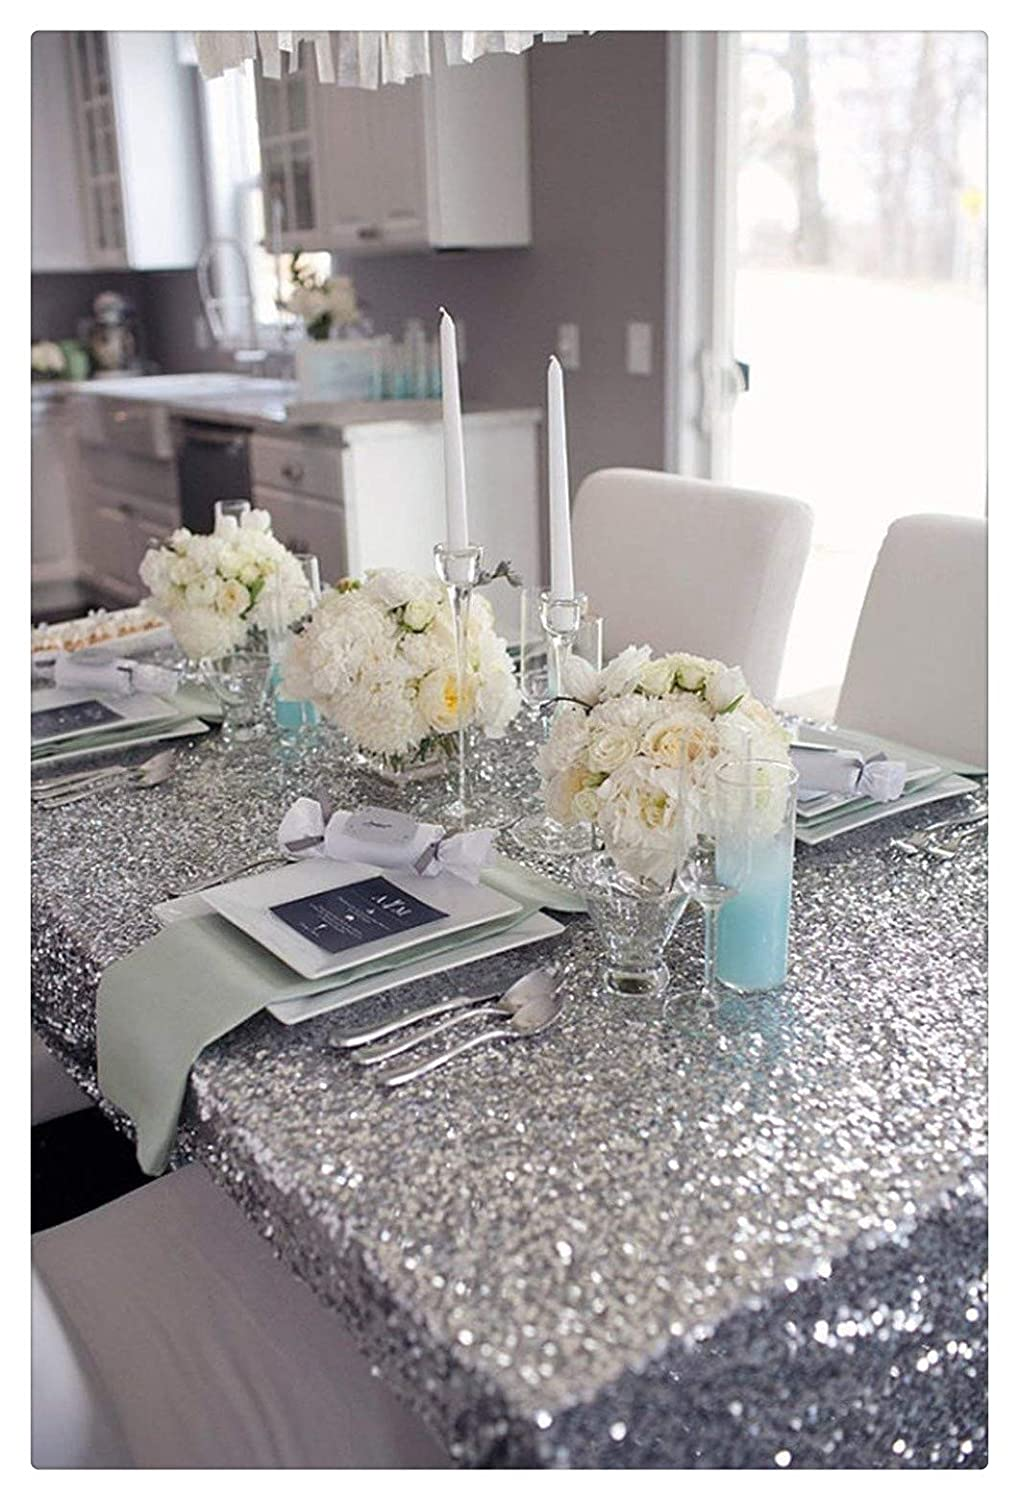 "B-COOL Silver Sequin Tablecloth 50""x80"" Sequin Glamorous Tablecloth for Halloween/Thanksgiving Day/Wedding/Party/Curtain/Birthday/Christmas/New Year and Other Event Decor"